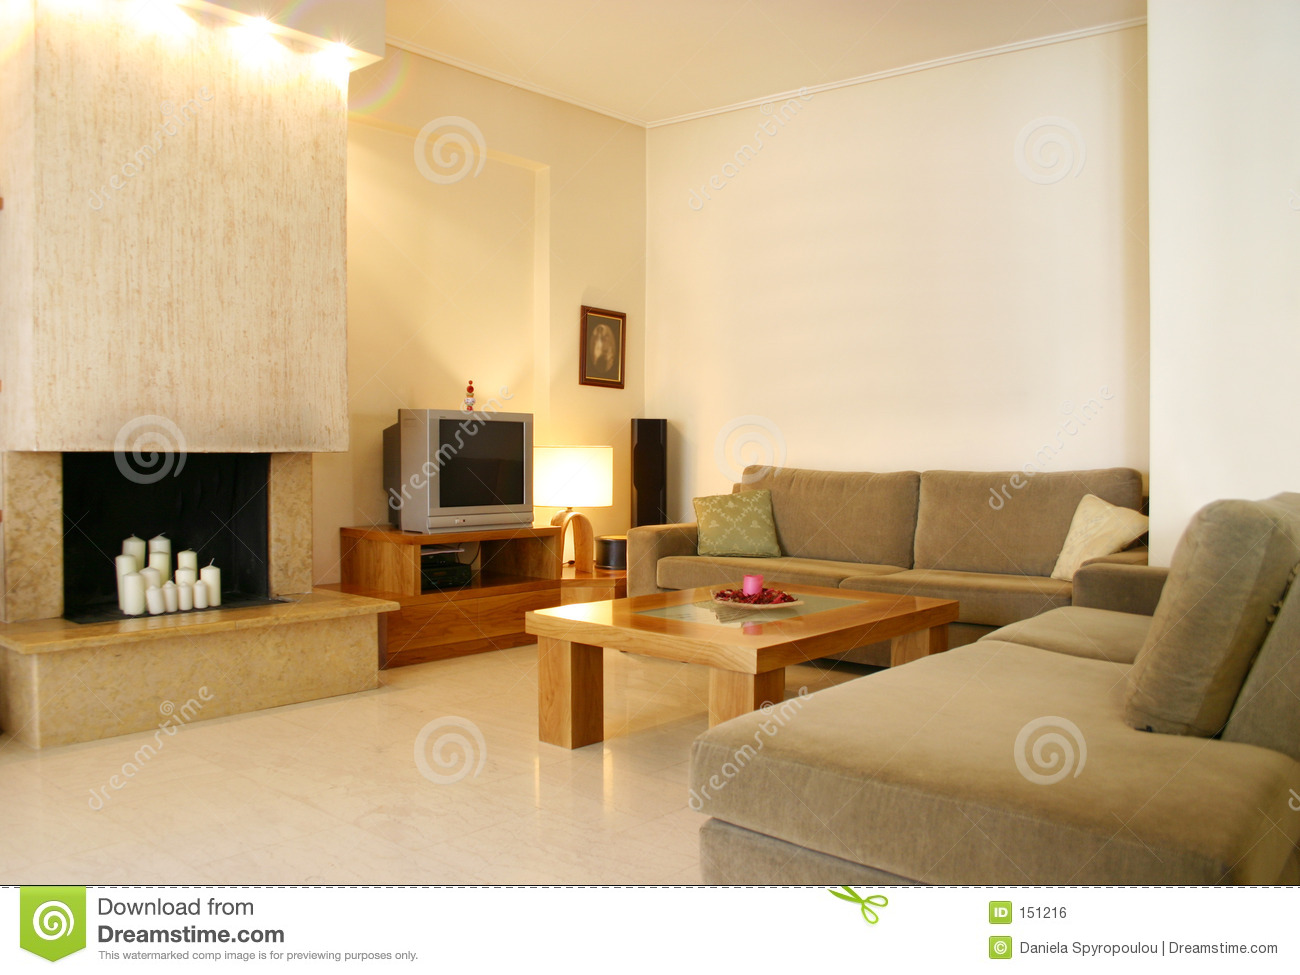 Home Interior Design Stock Photo Image Of Modern Decorating